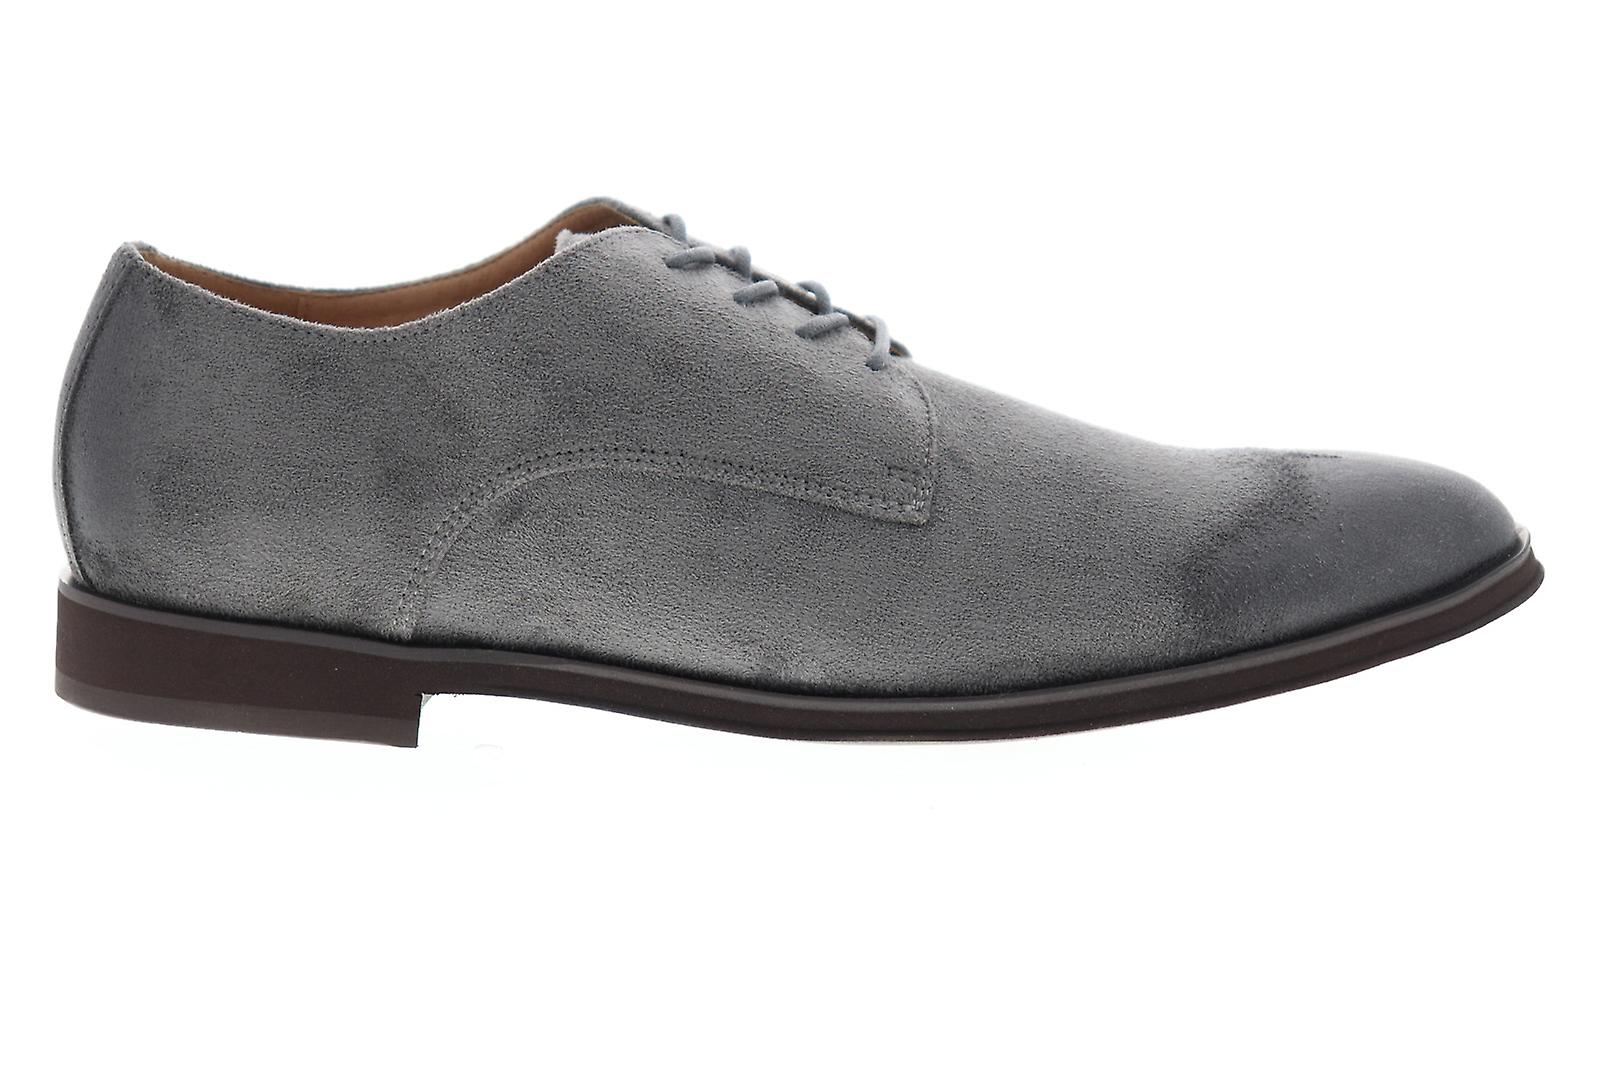 Steve Madden Mens Gray Suede Casual Lace Up Oxfords Sko